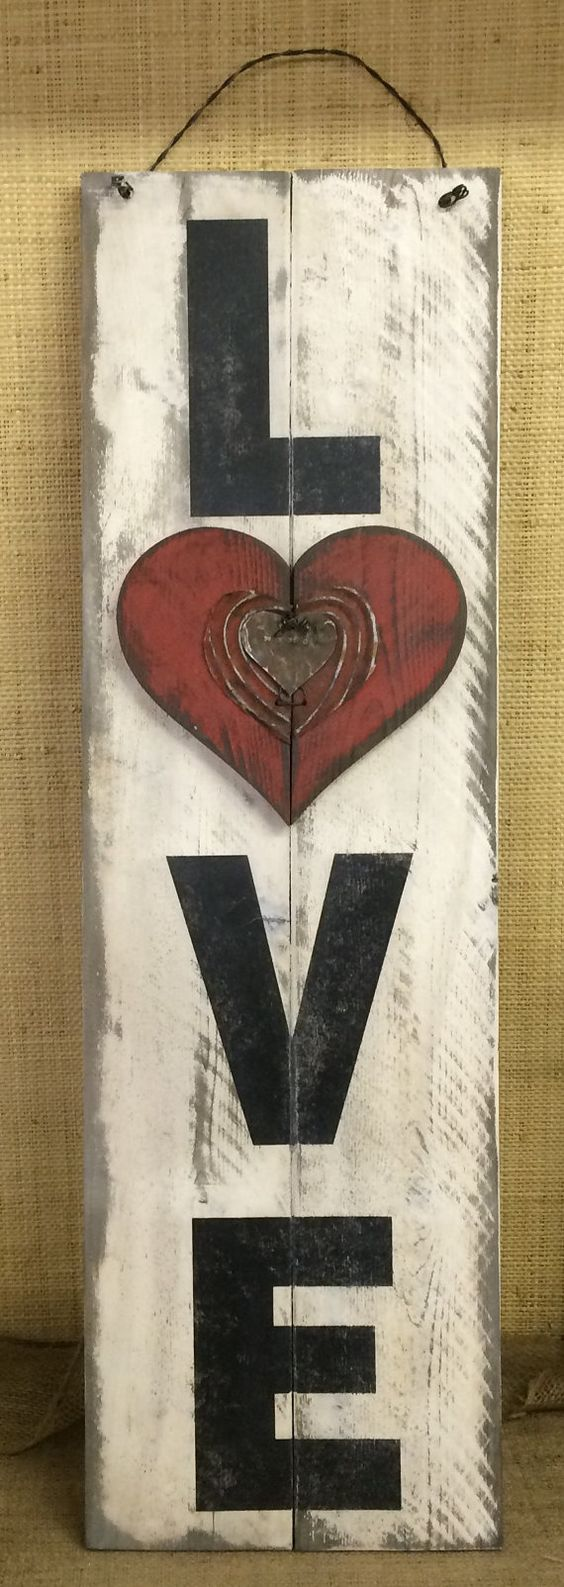 Love / Valentine's Day Sign Handmade & Painted por Chotchkieville: